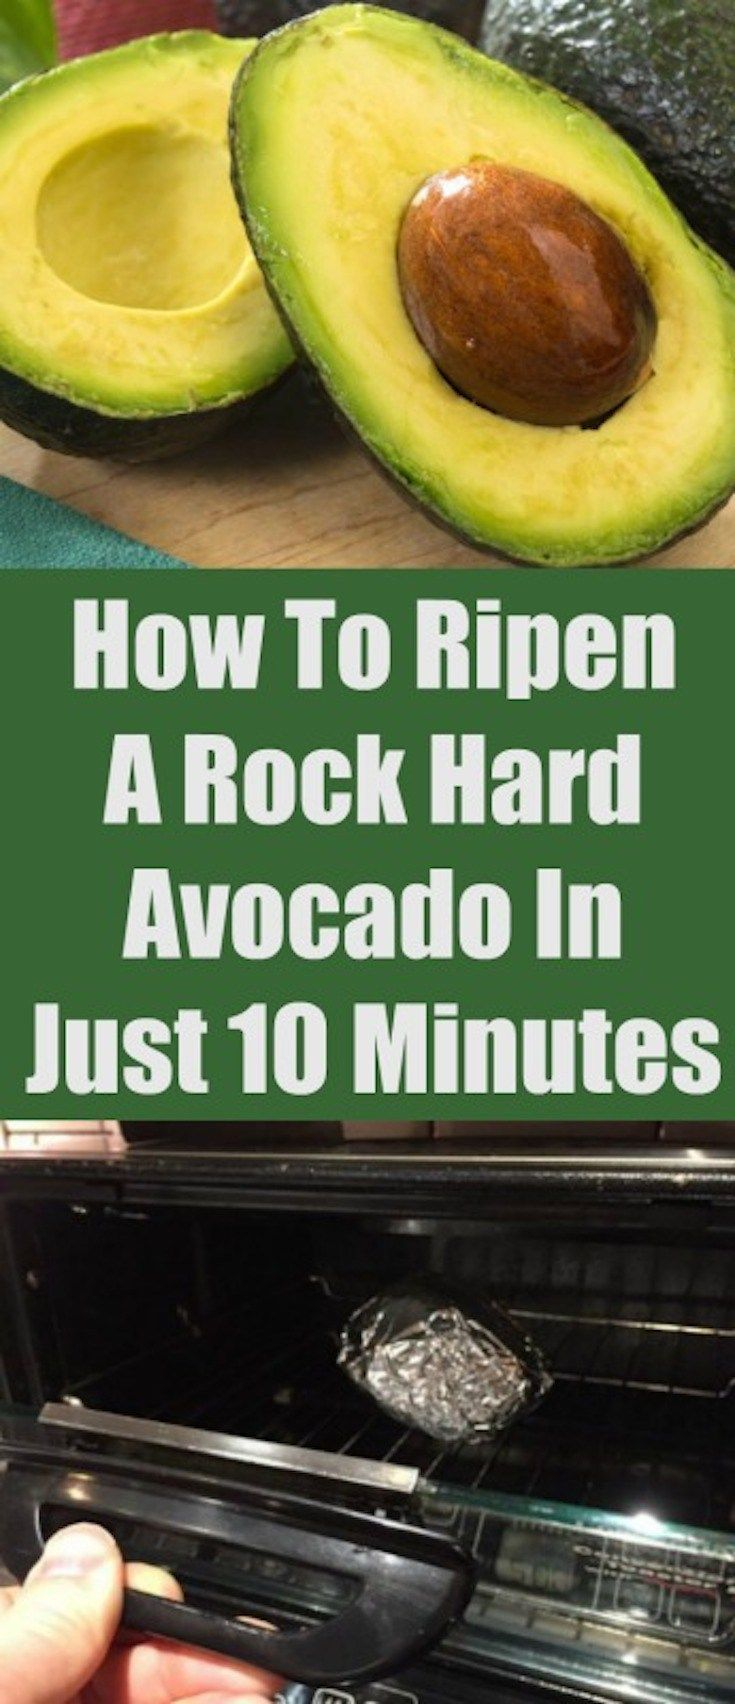 Amazing avocado hack to ripen it in just 10 minutes.